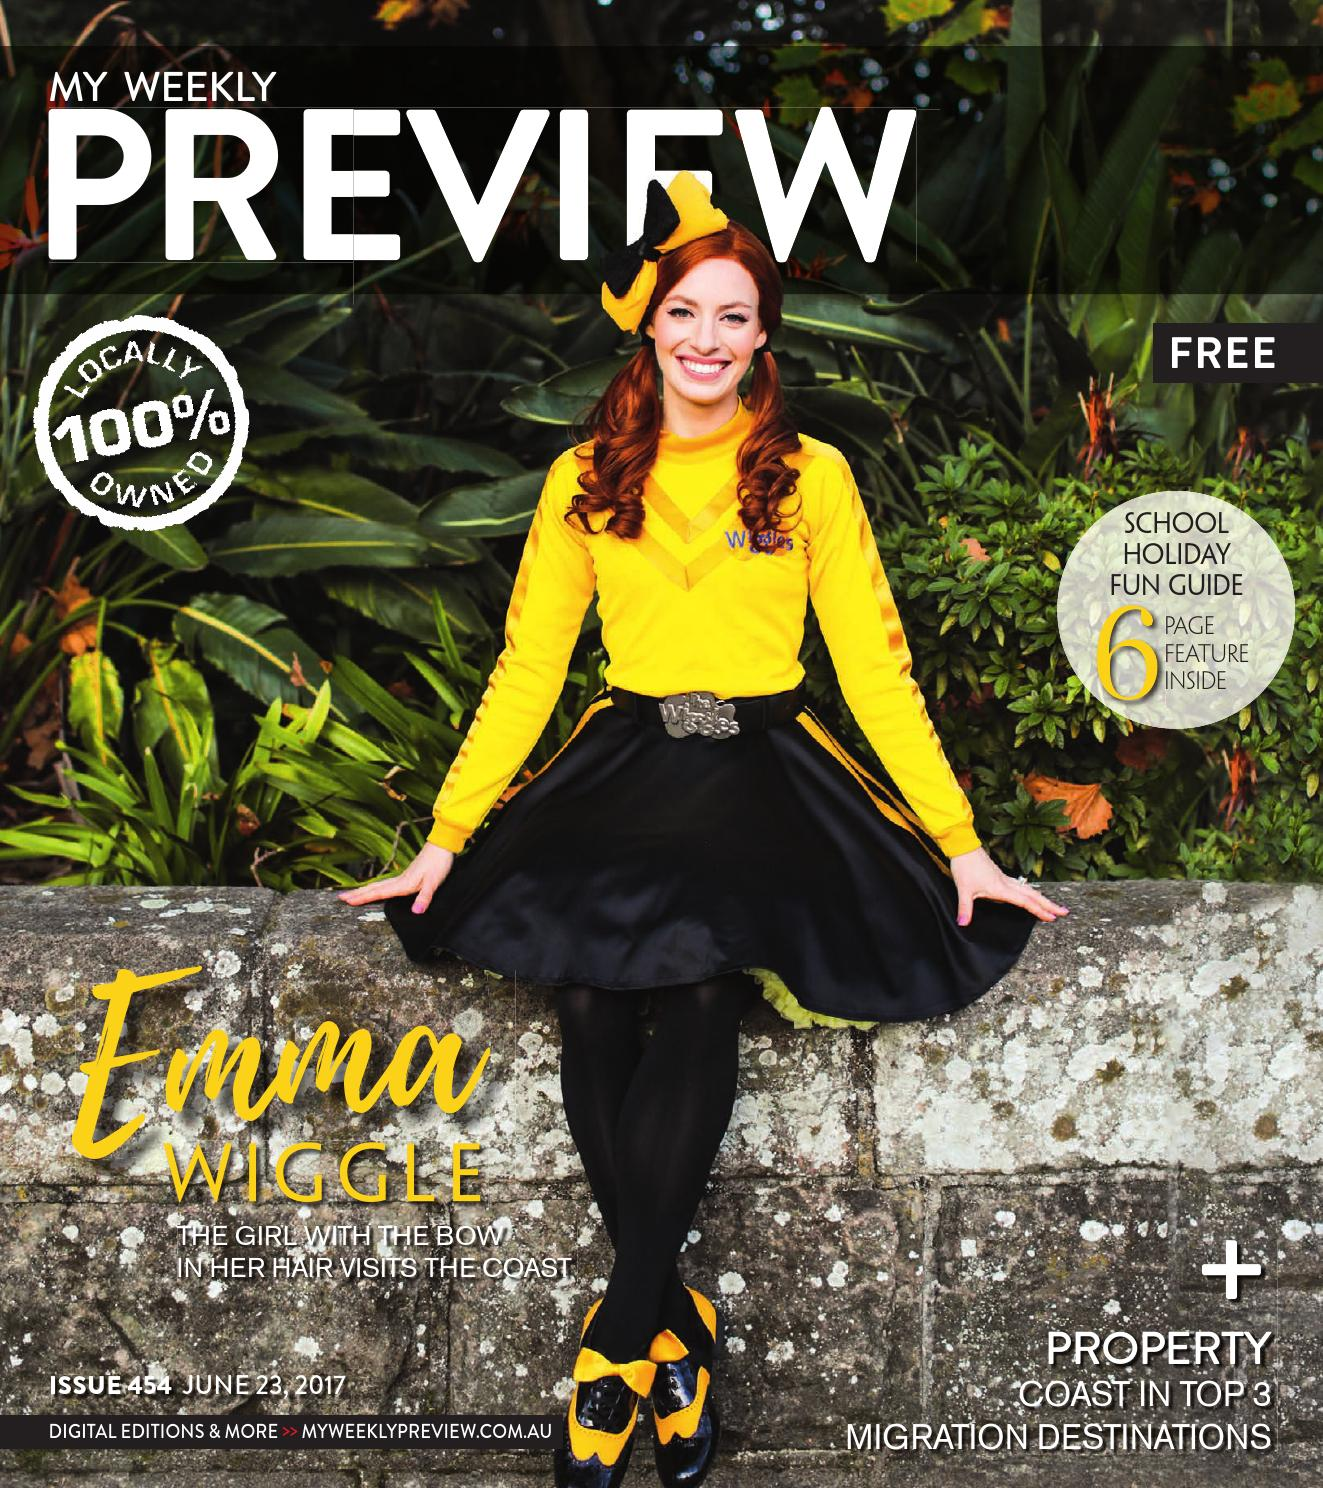 Mwp454 by My Weekly Preview - issuu